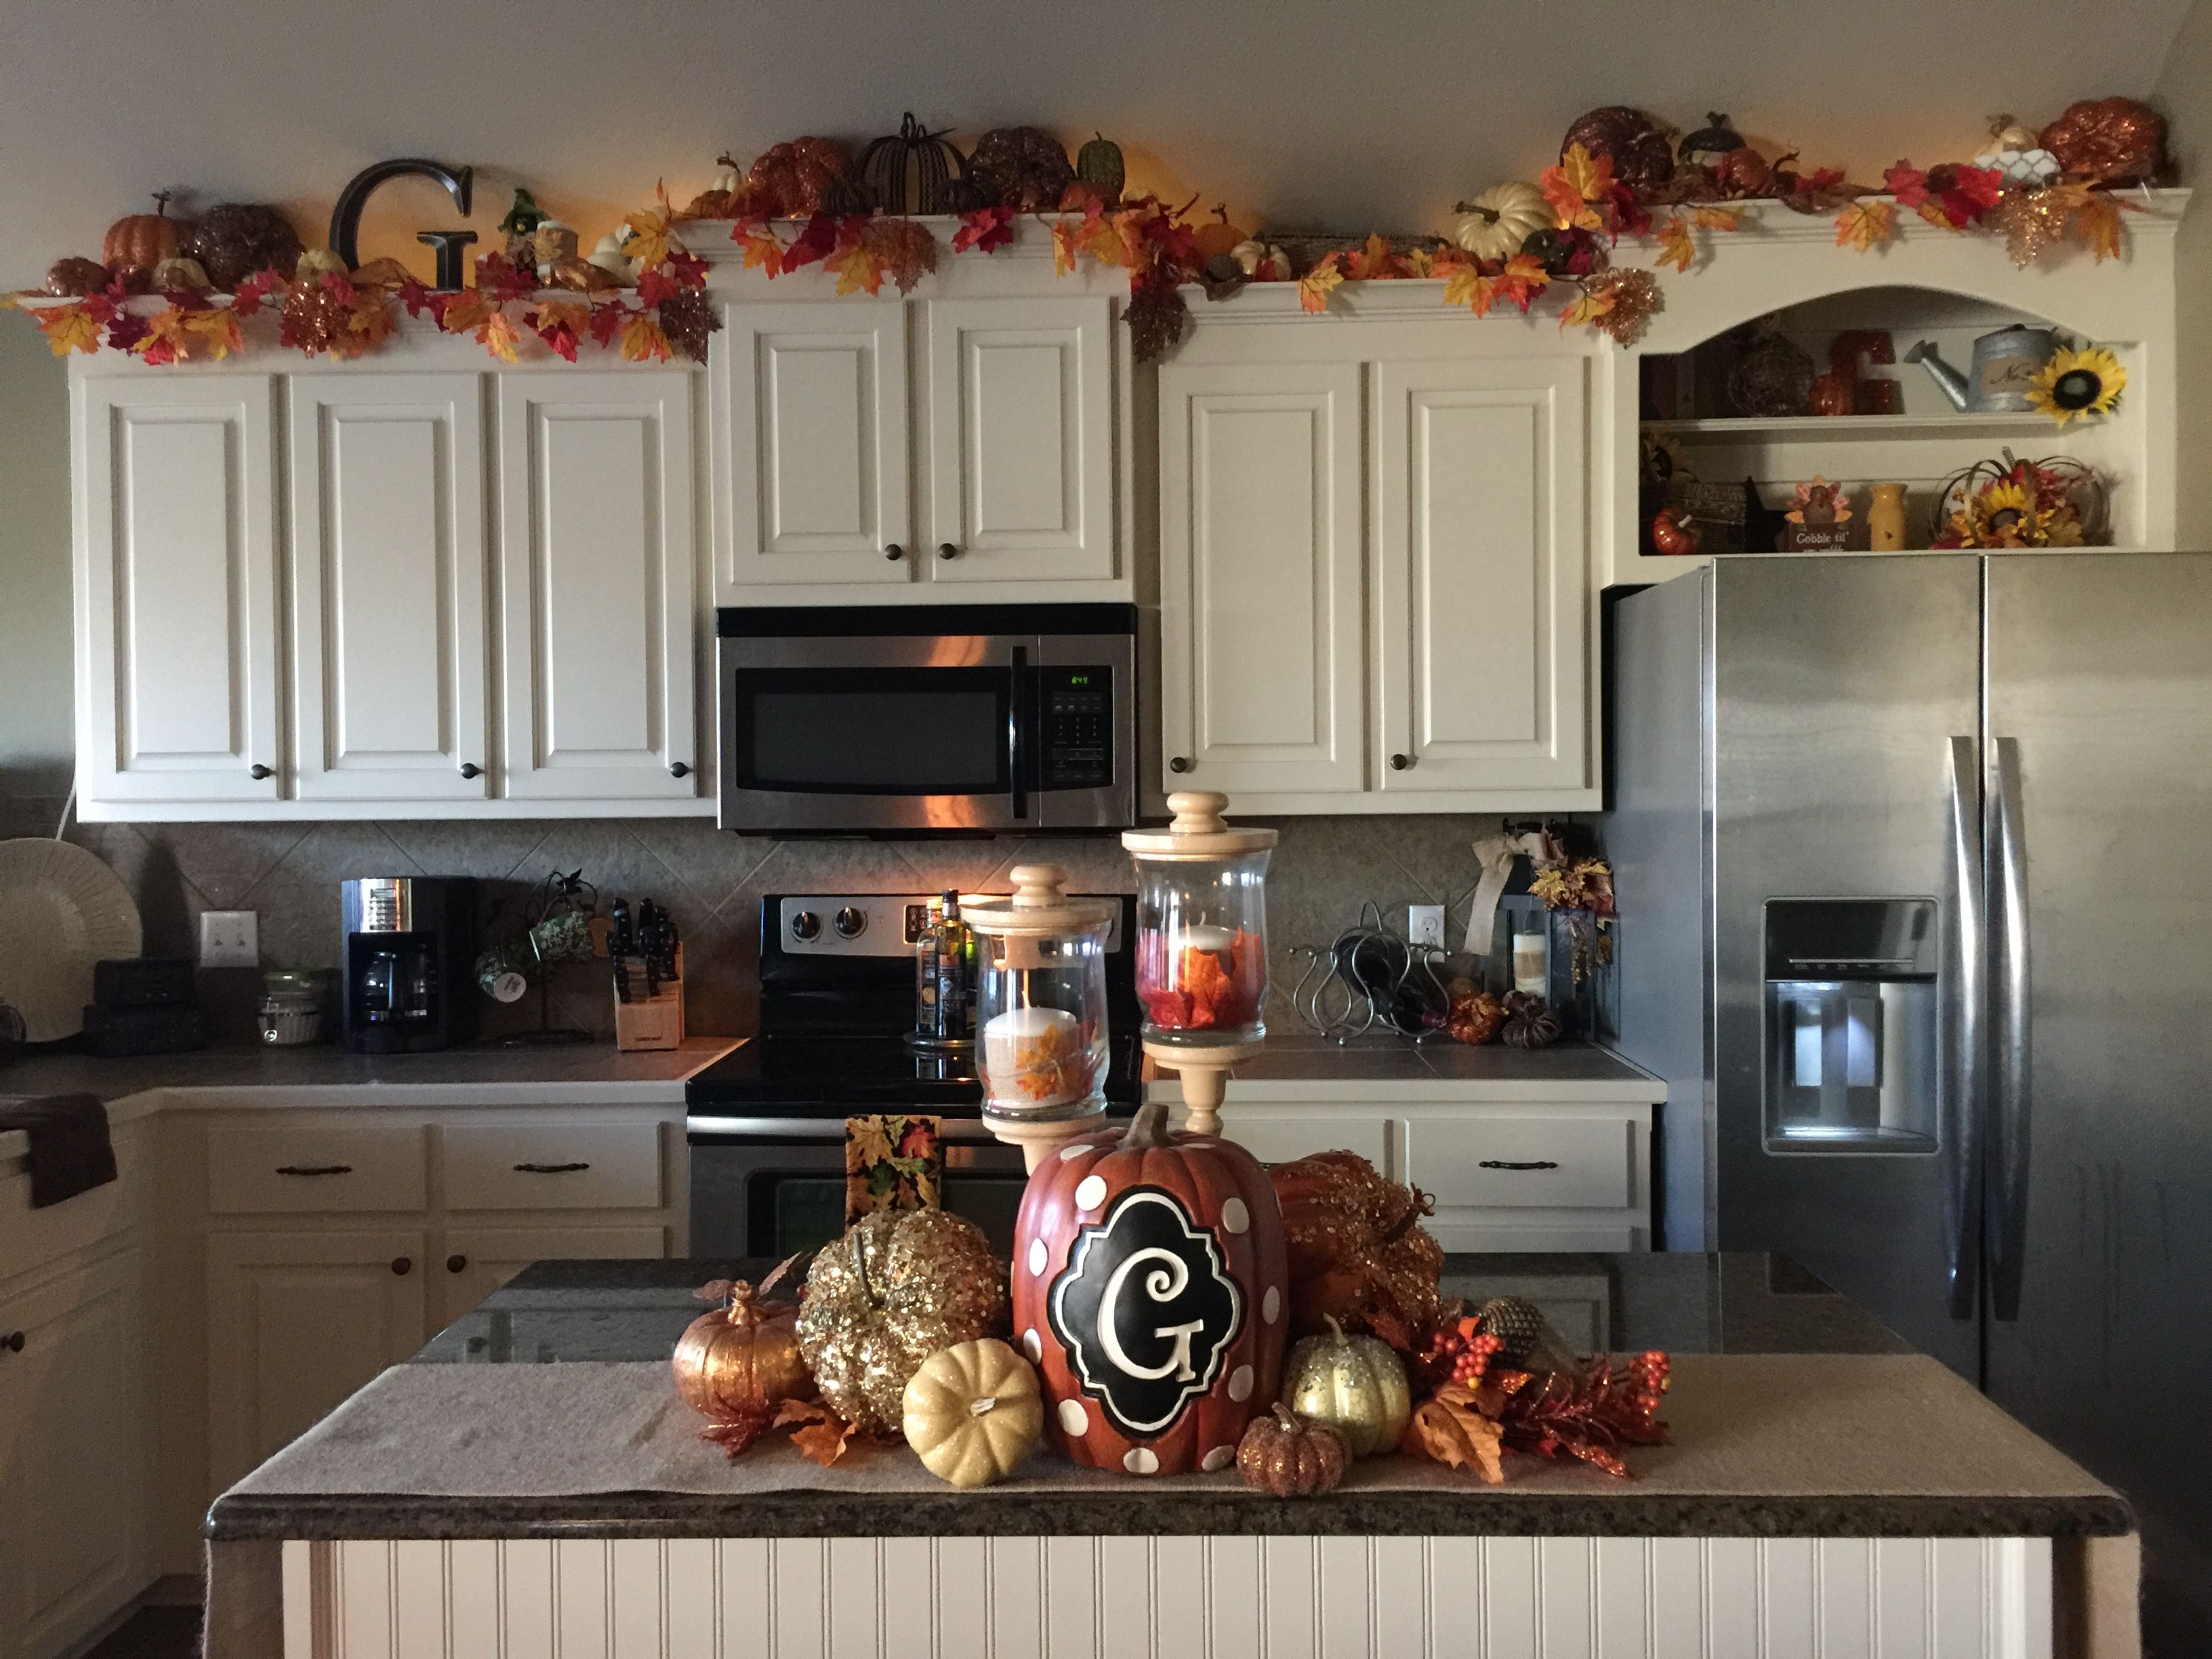 fall kitchen decor commercial ventilation starter home small decorations above cabinet thanksgiving decoration